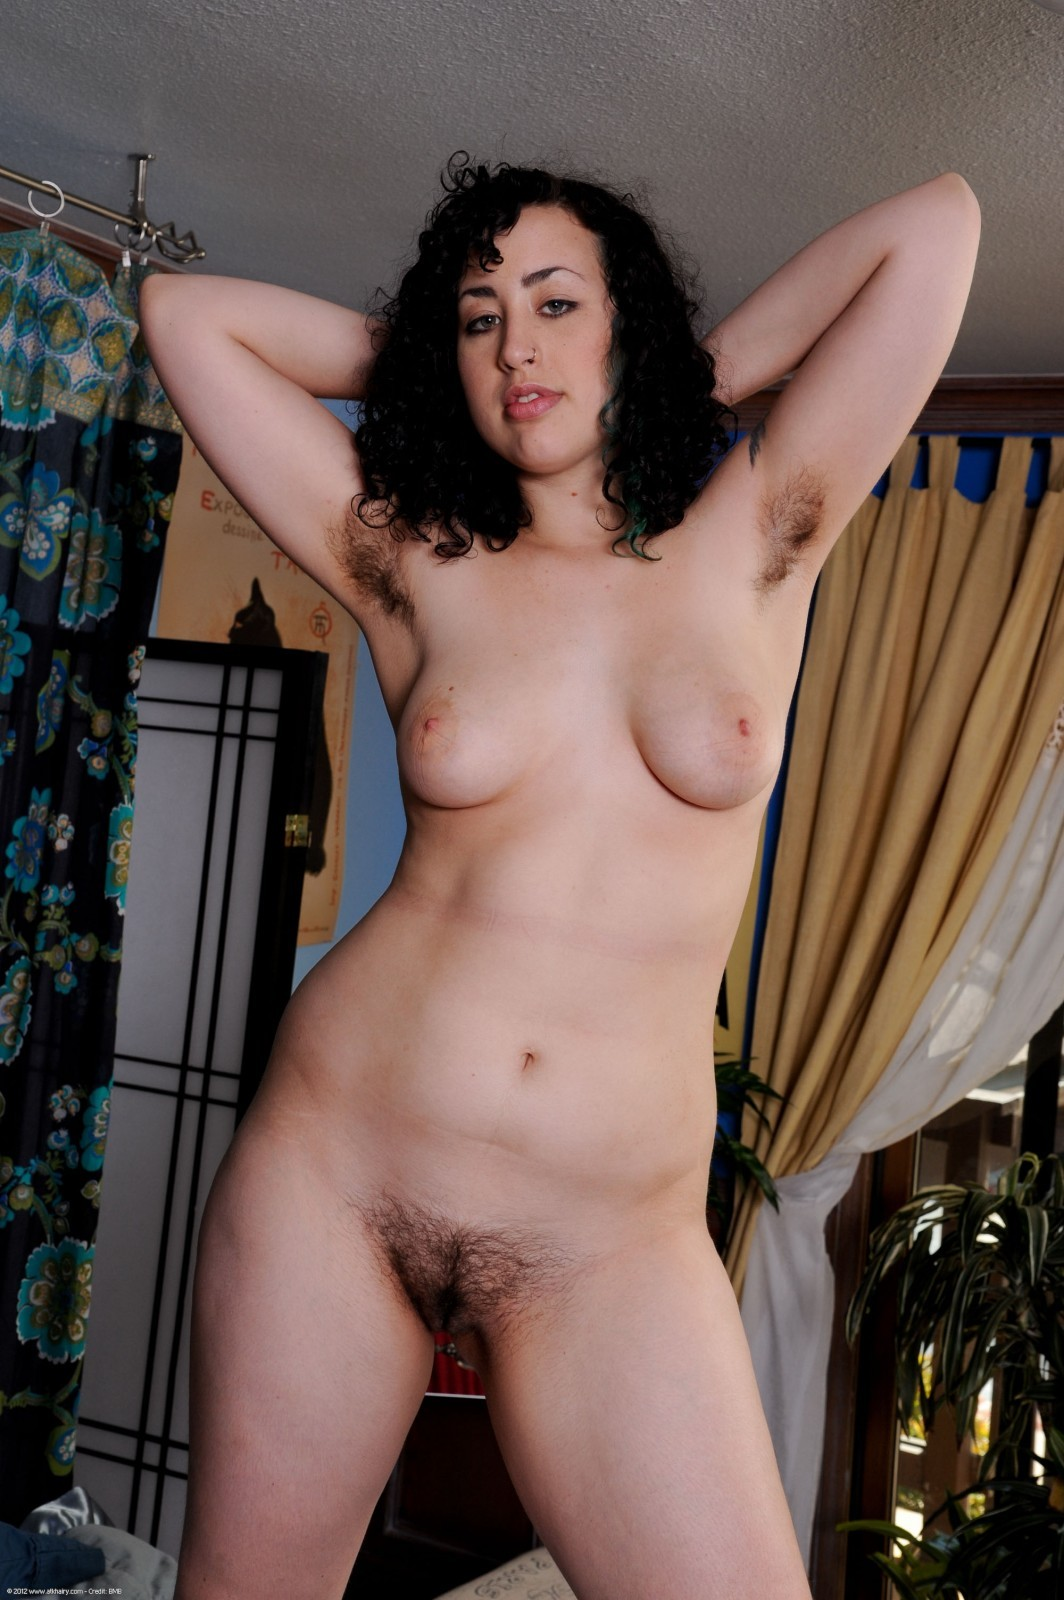 Spank mounth drilled first time